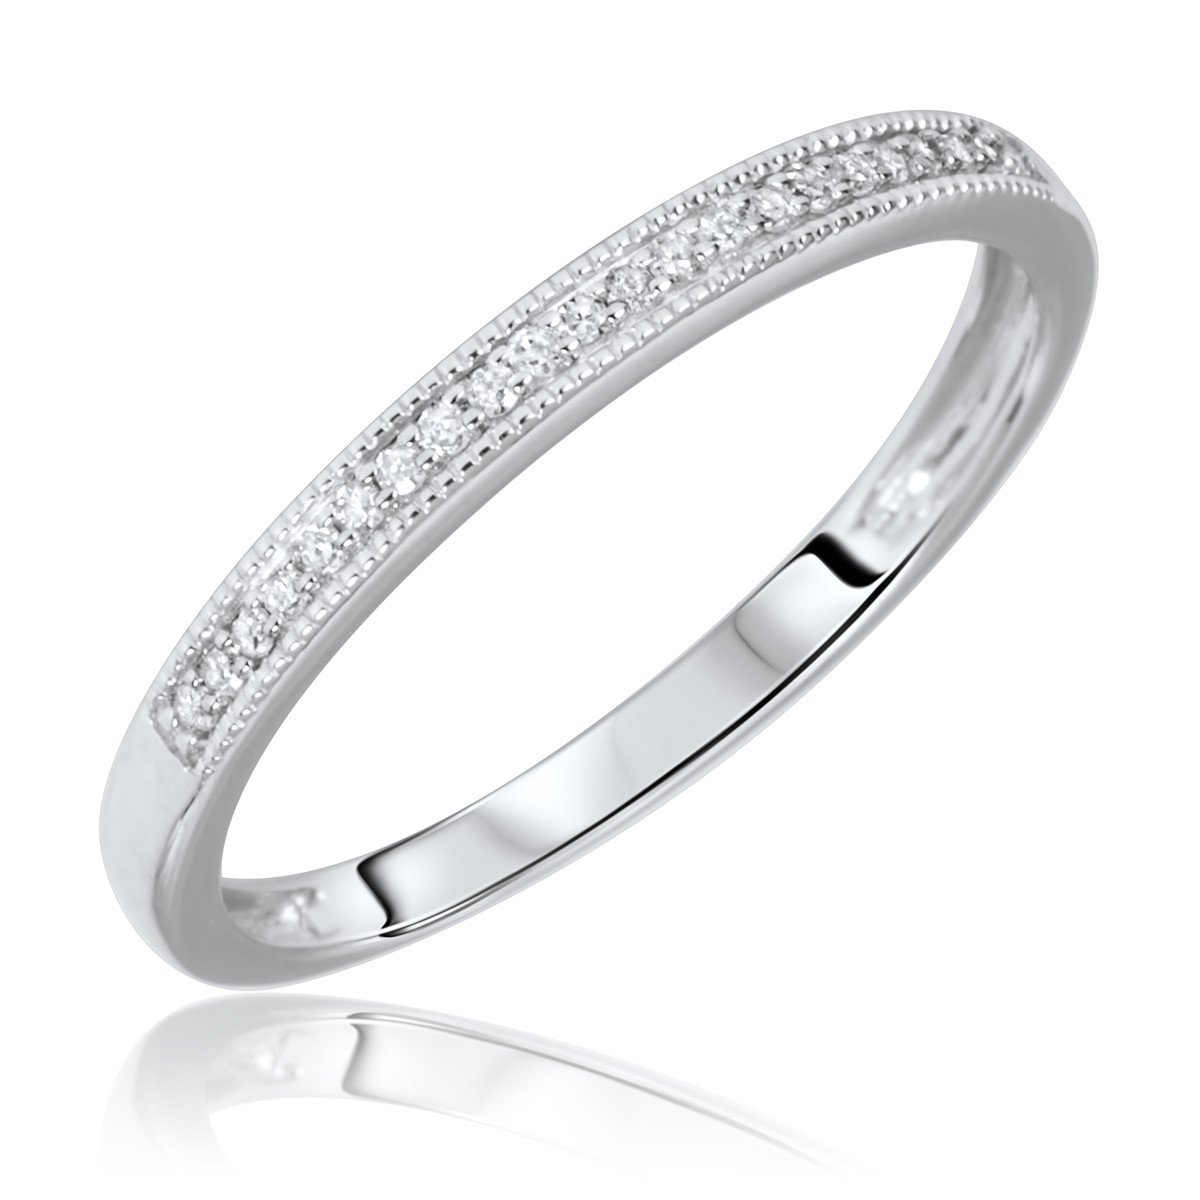 1/15 Carat T.W. Round Cut Diamond Ladies Wedding Band 14K White Gold